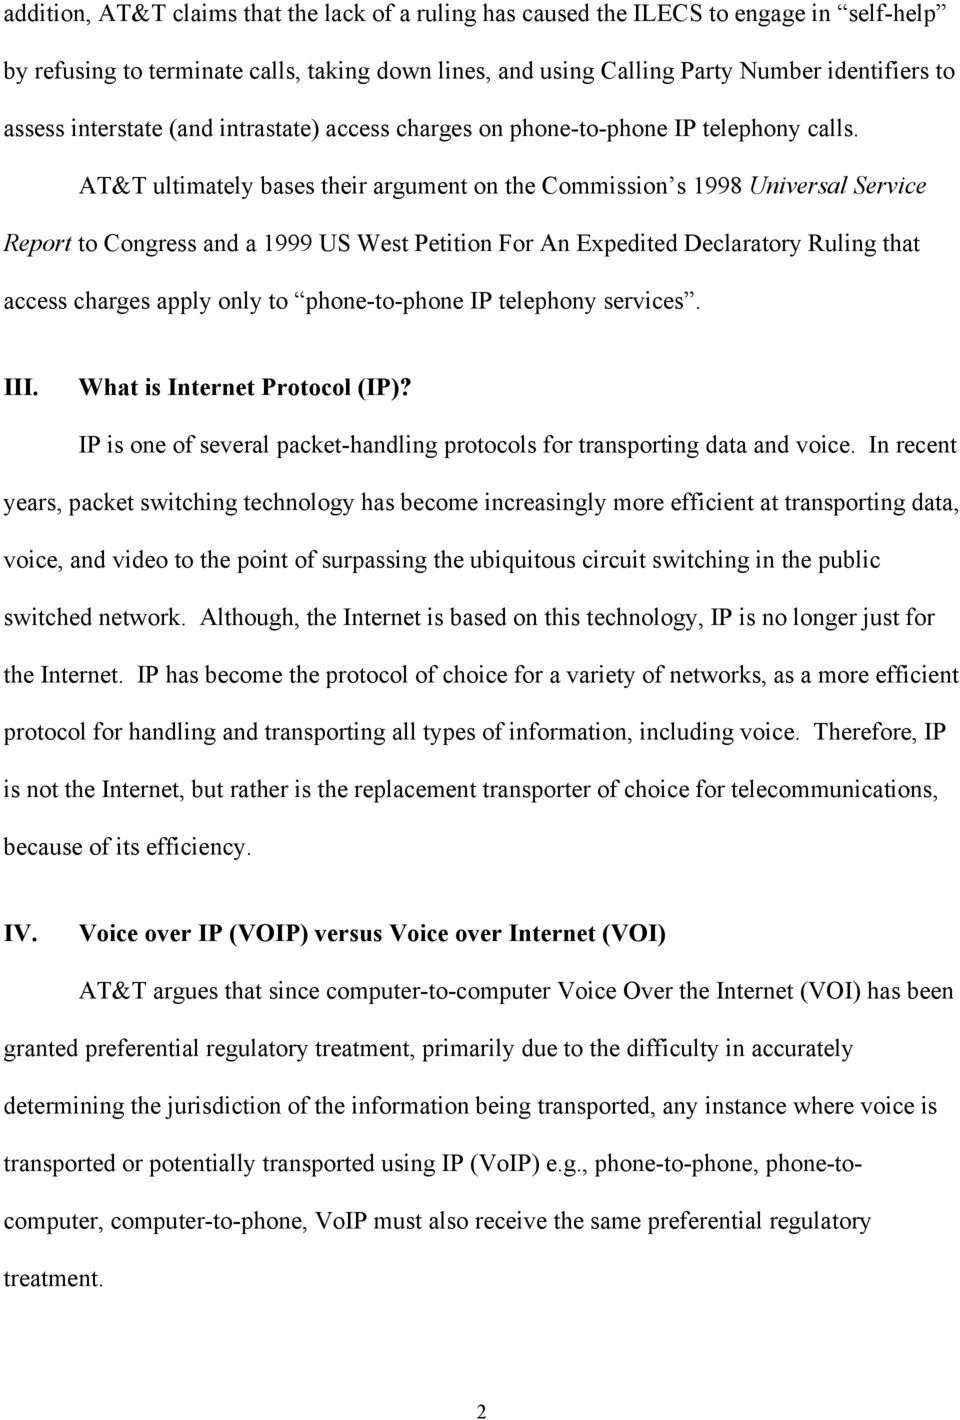 AT&T ultimately bases their argument on the Commission s 1998 Universal Service Report to Congress and a 1999 US West Petition For An Expedited Declaratory Ruling that access charges apply only to